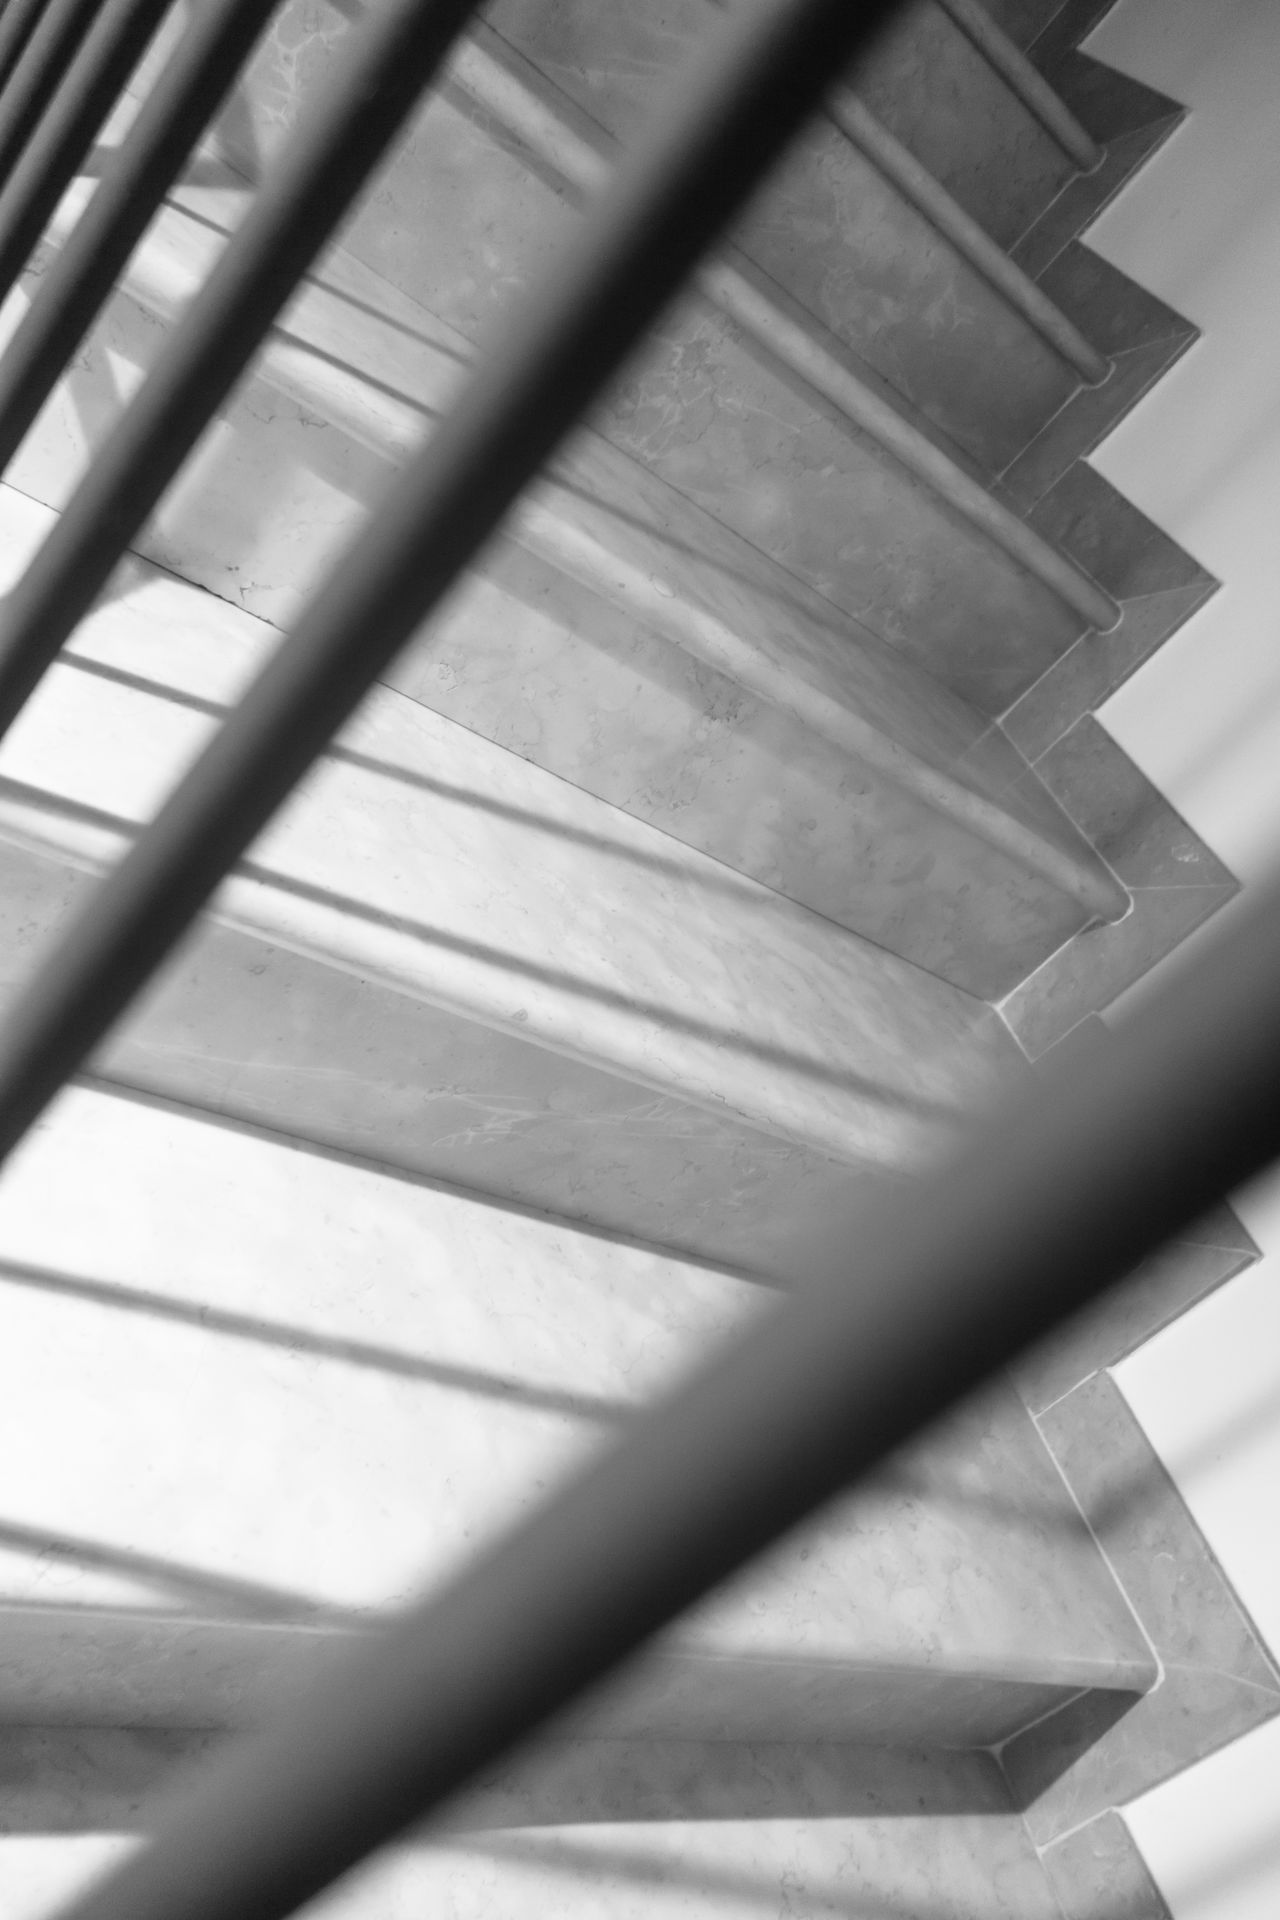 Architecture Black And White Built Structure Close-up Day Indoors  Light Light And Shadow Low Angle View No People Railing Railing Stair Staircase Stairs Stairs & Shadows Steps Steps And Staircases